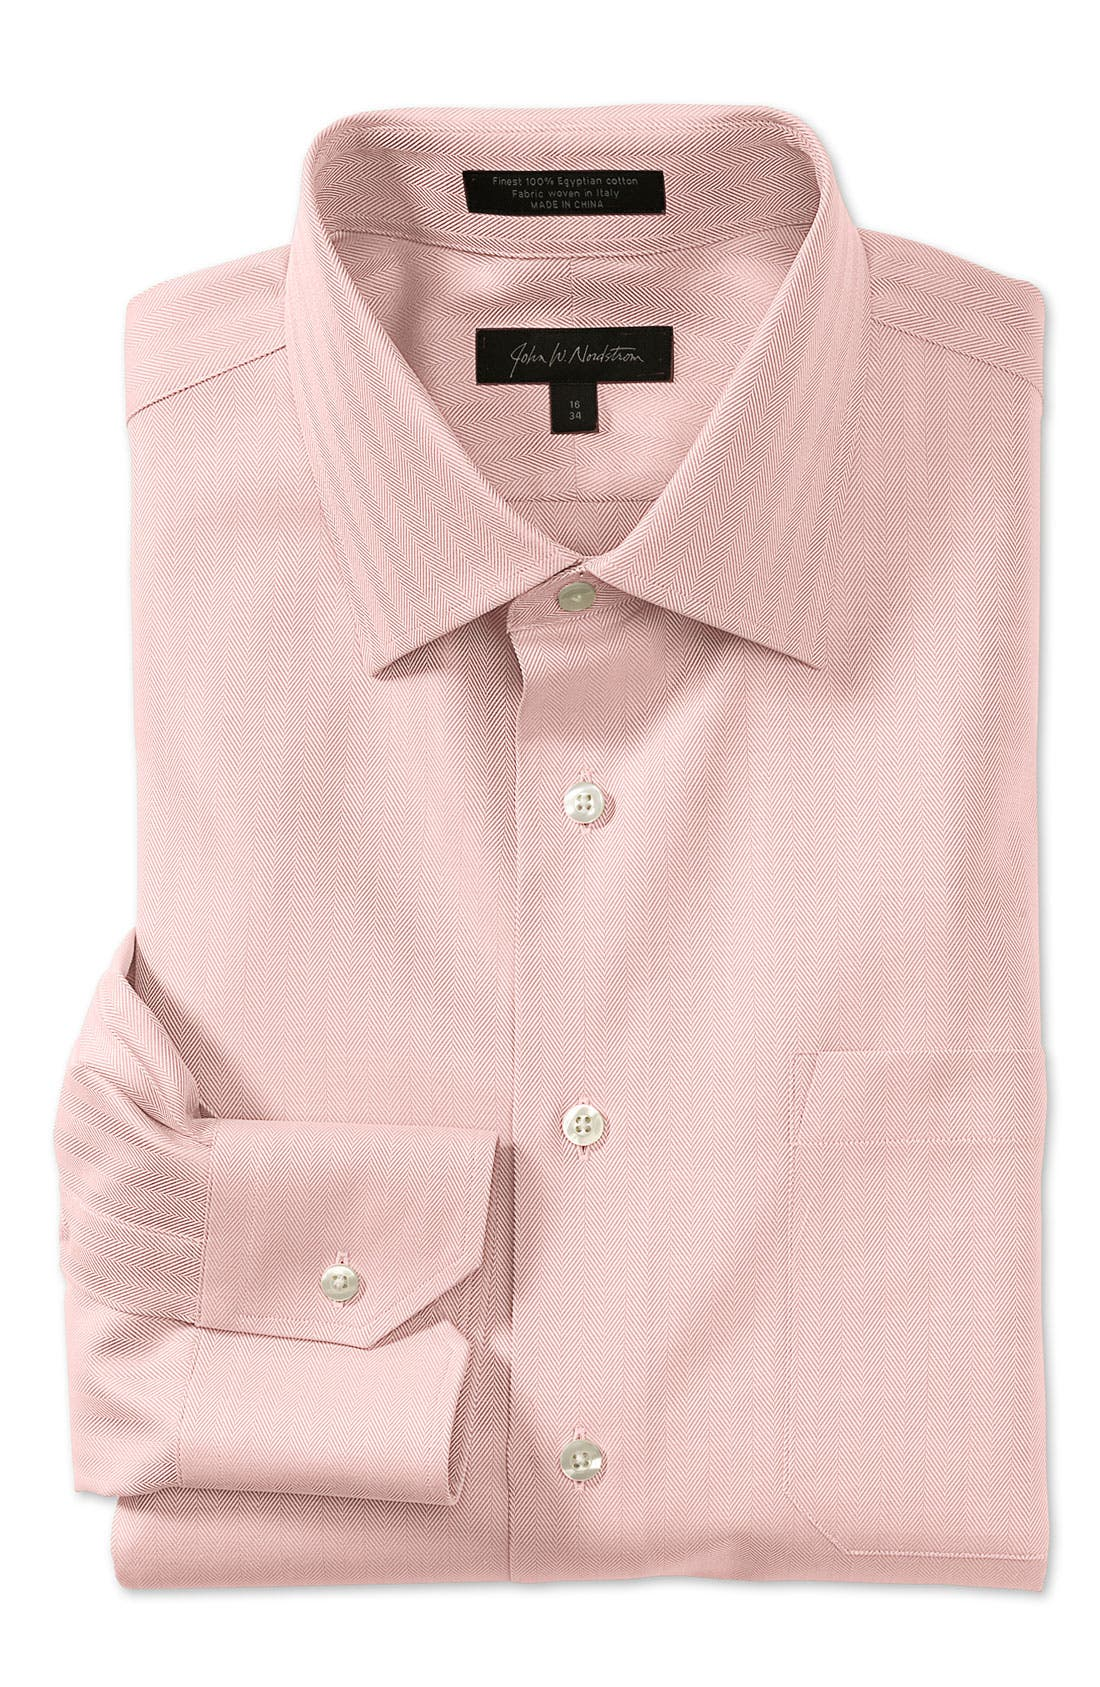 Main Image - John W. Nordstrom® Men's Solid Herringbone Cotton Traditional Fit Dress Shirt